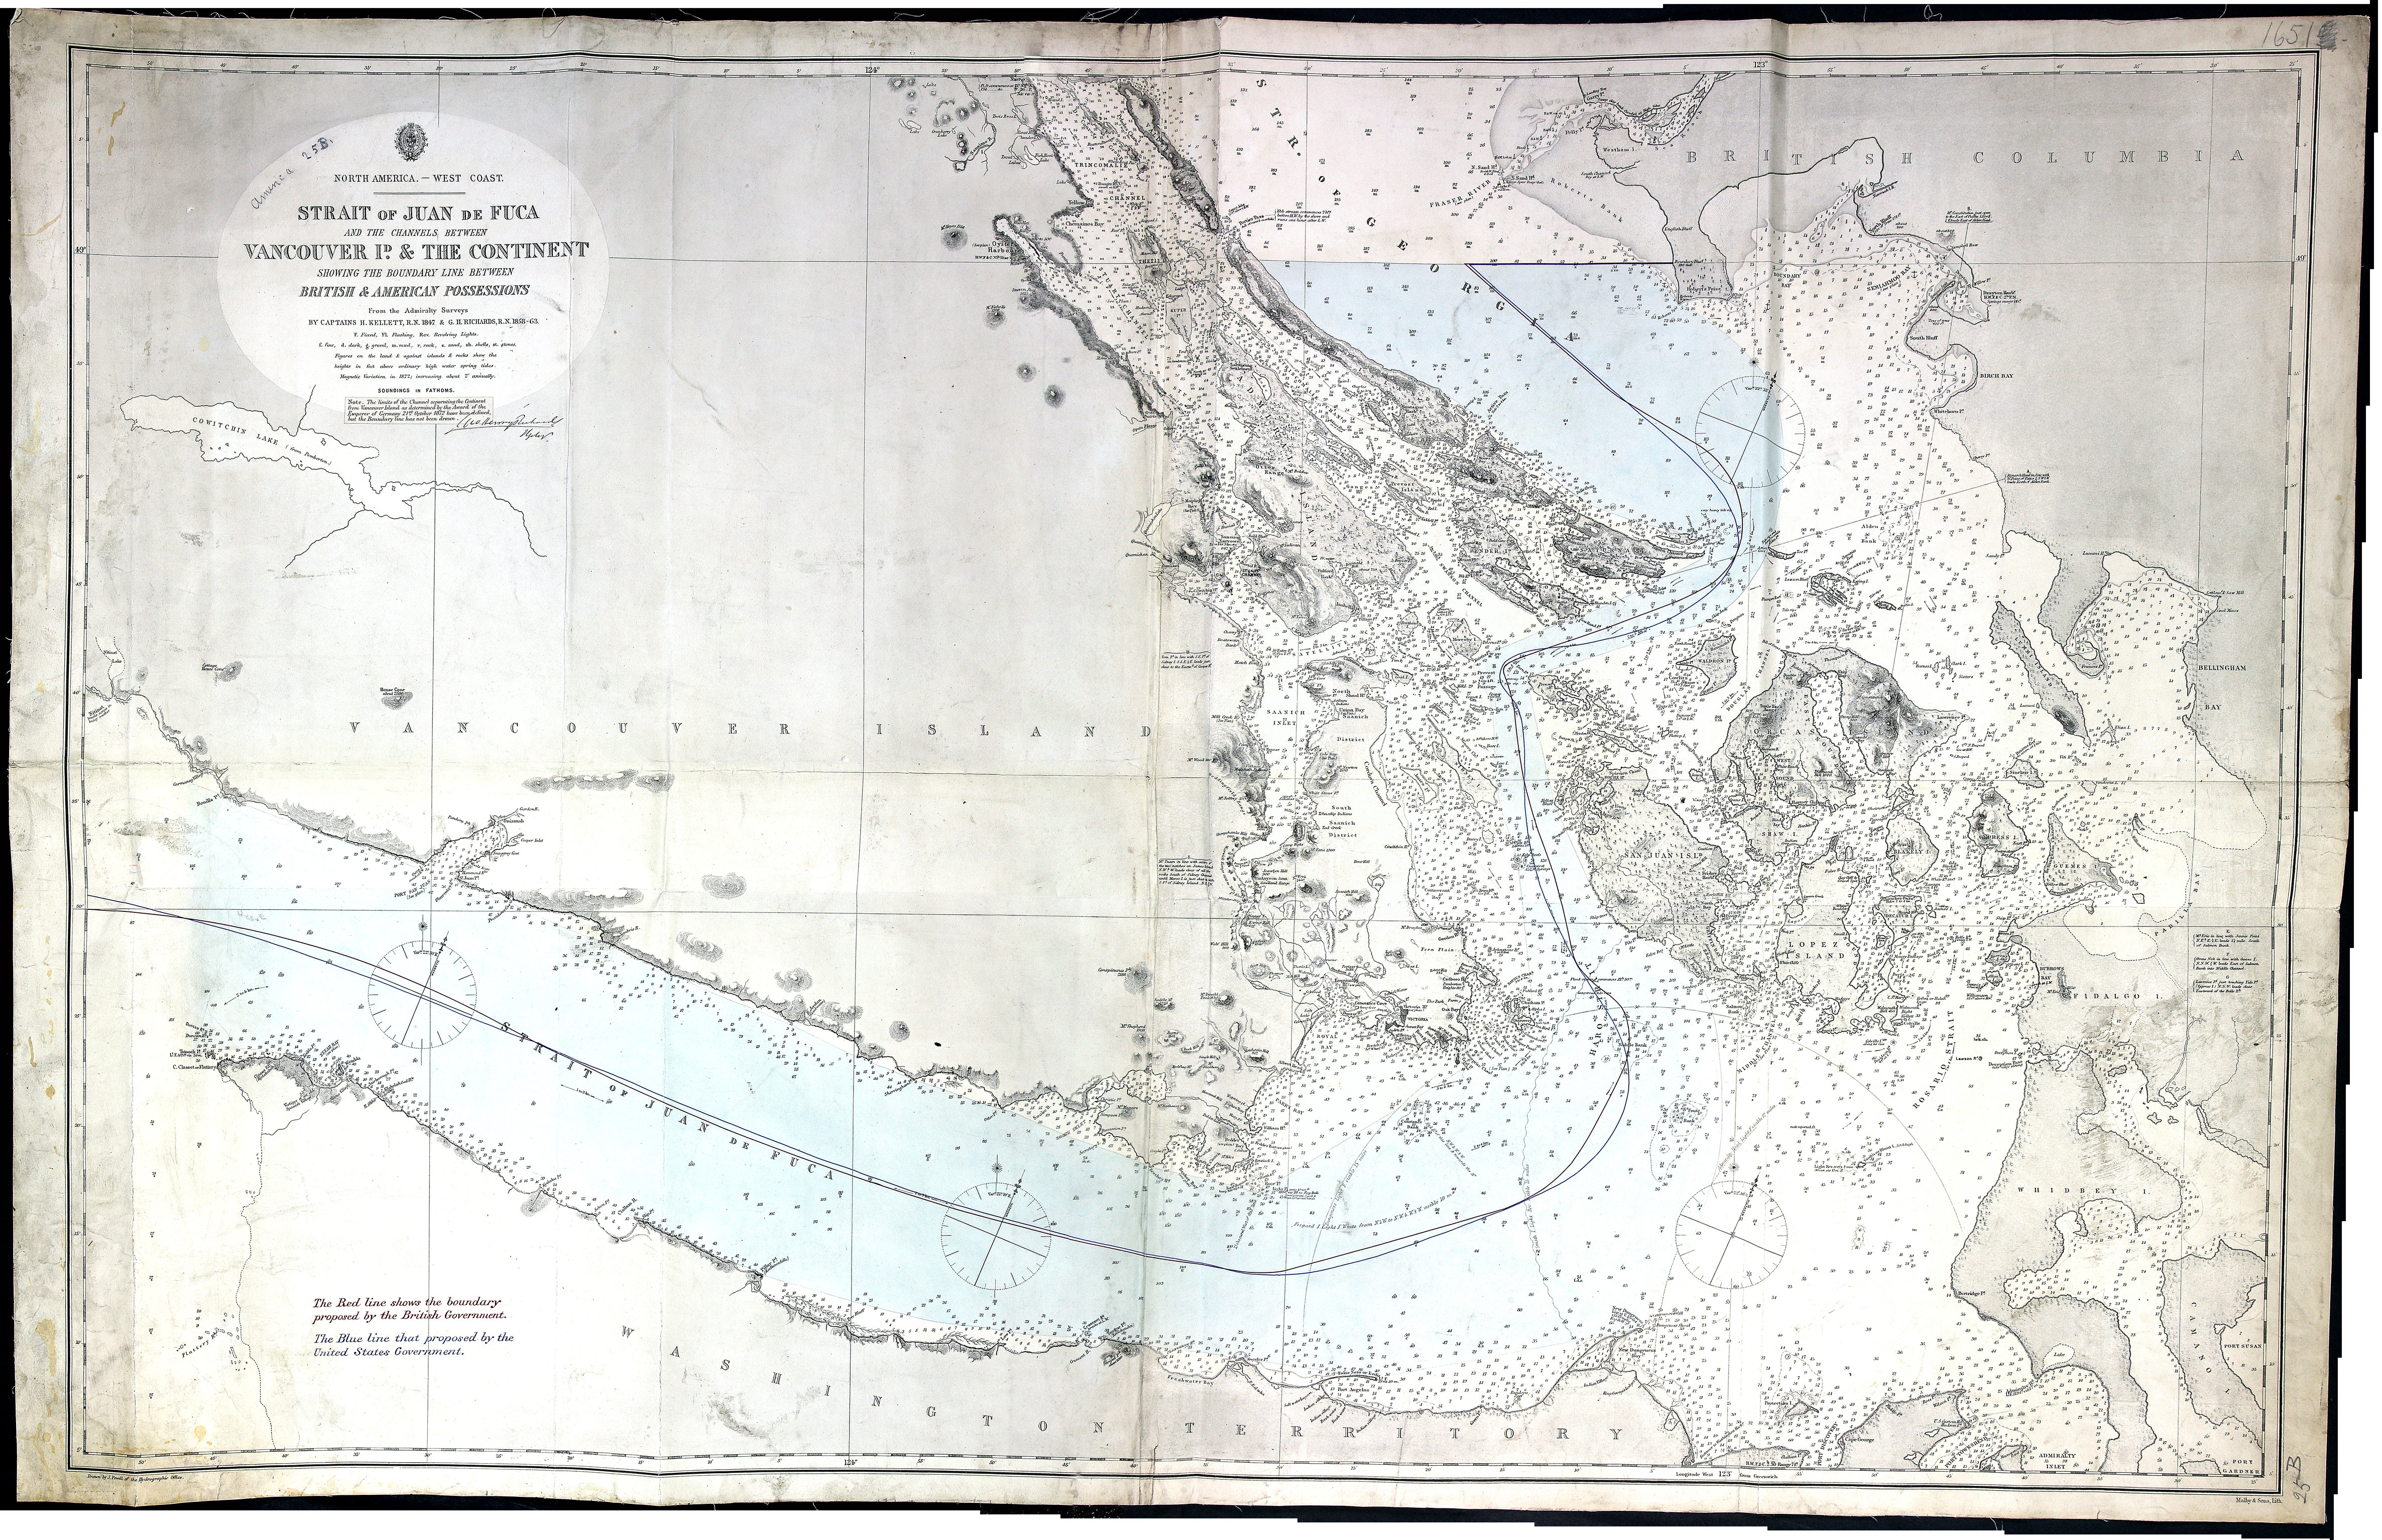 Strait of Juan de Fuca and the channels between Vancouver Id. & the continent, showing the boundary line between British & American possessions